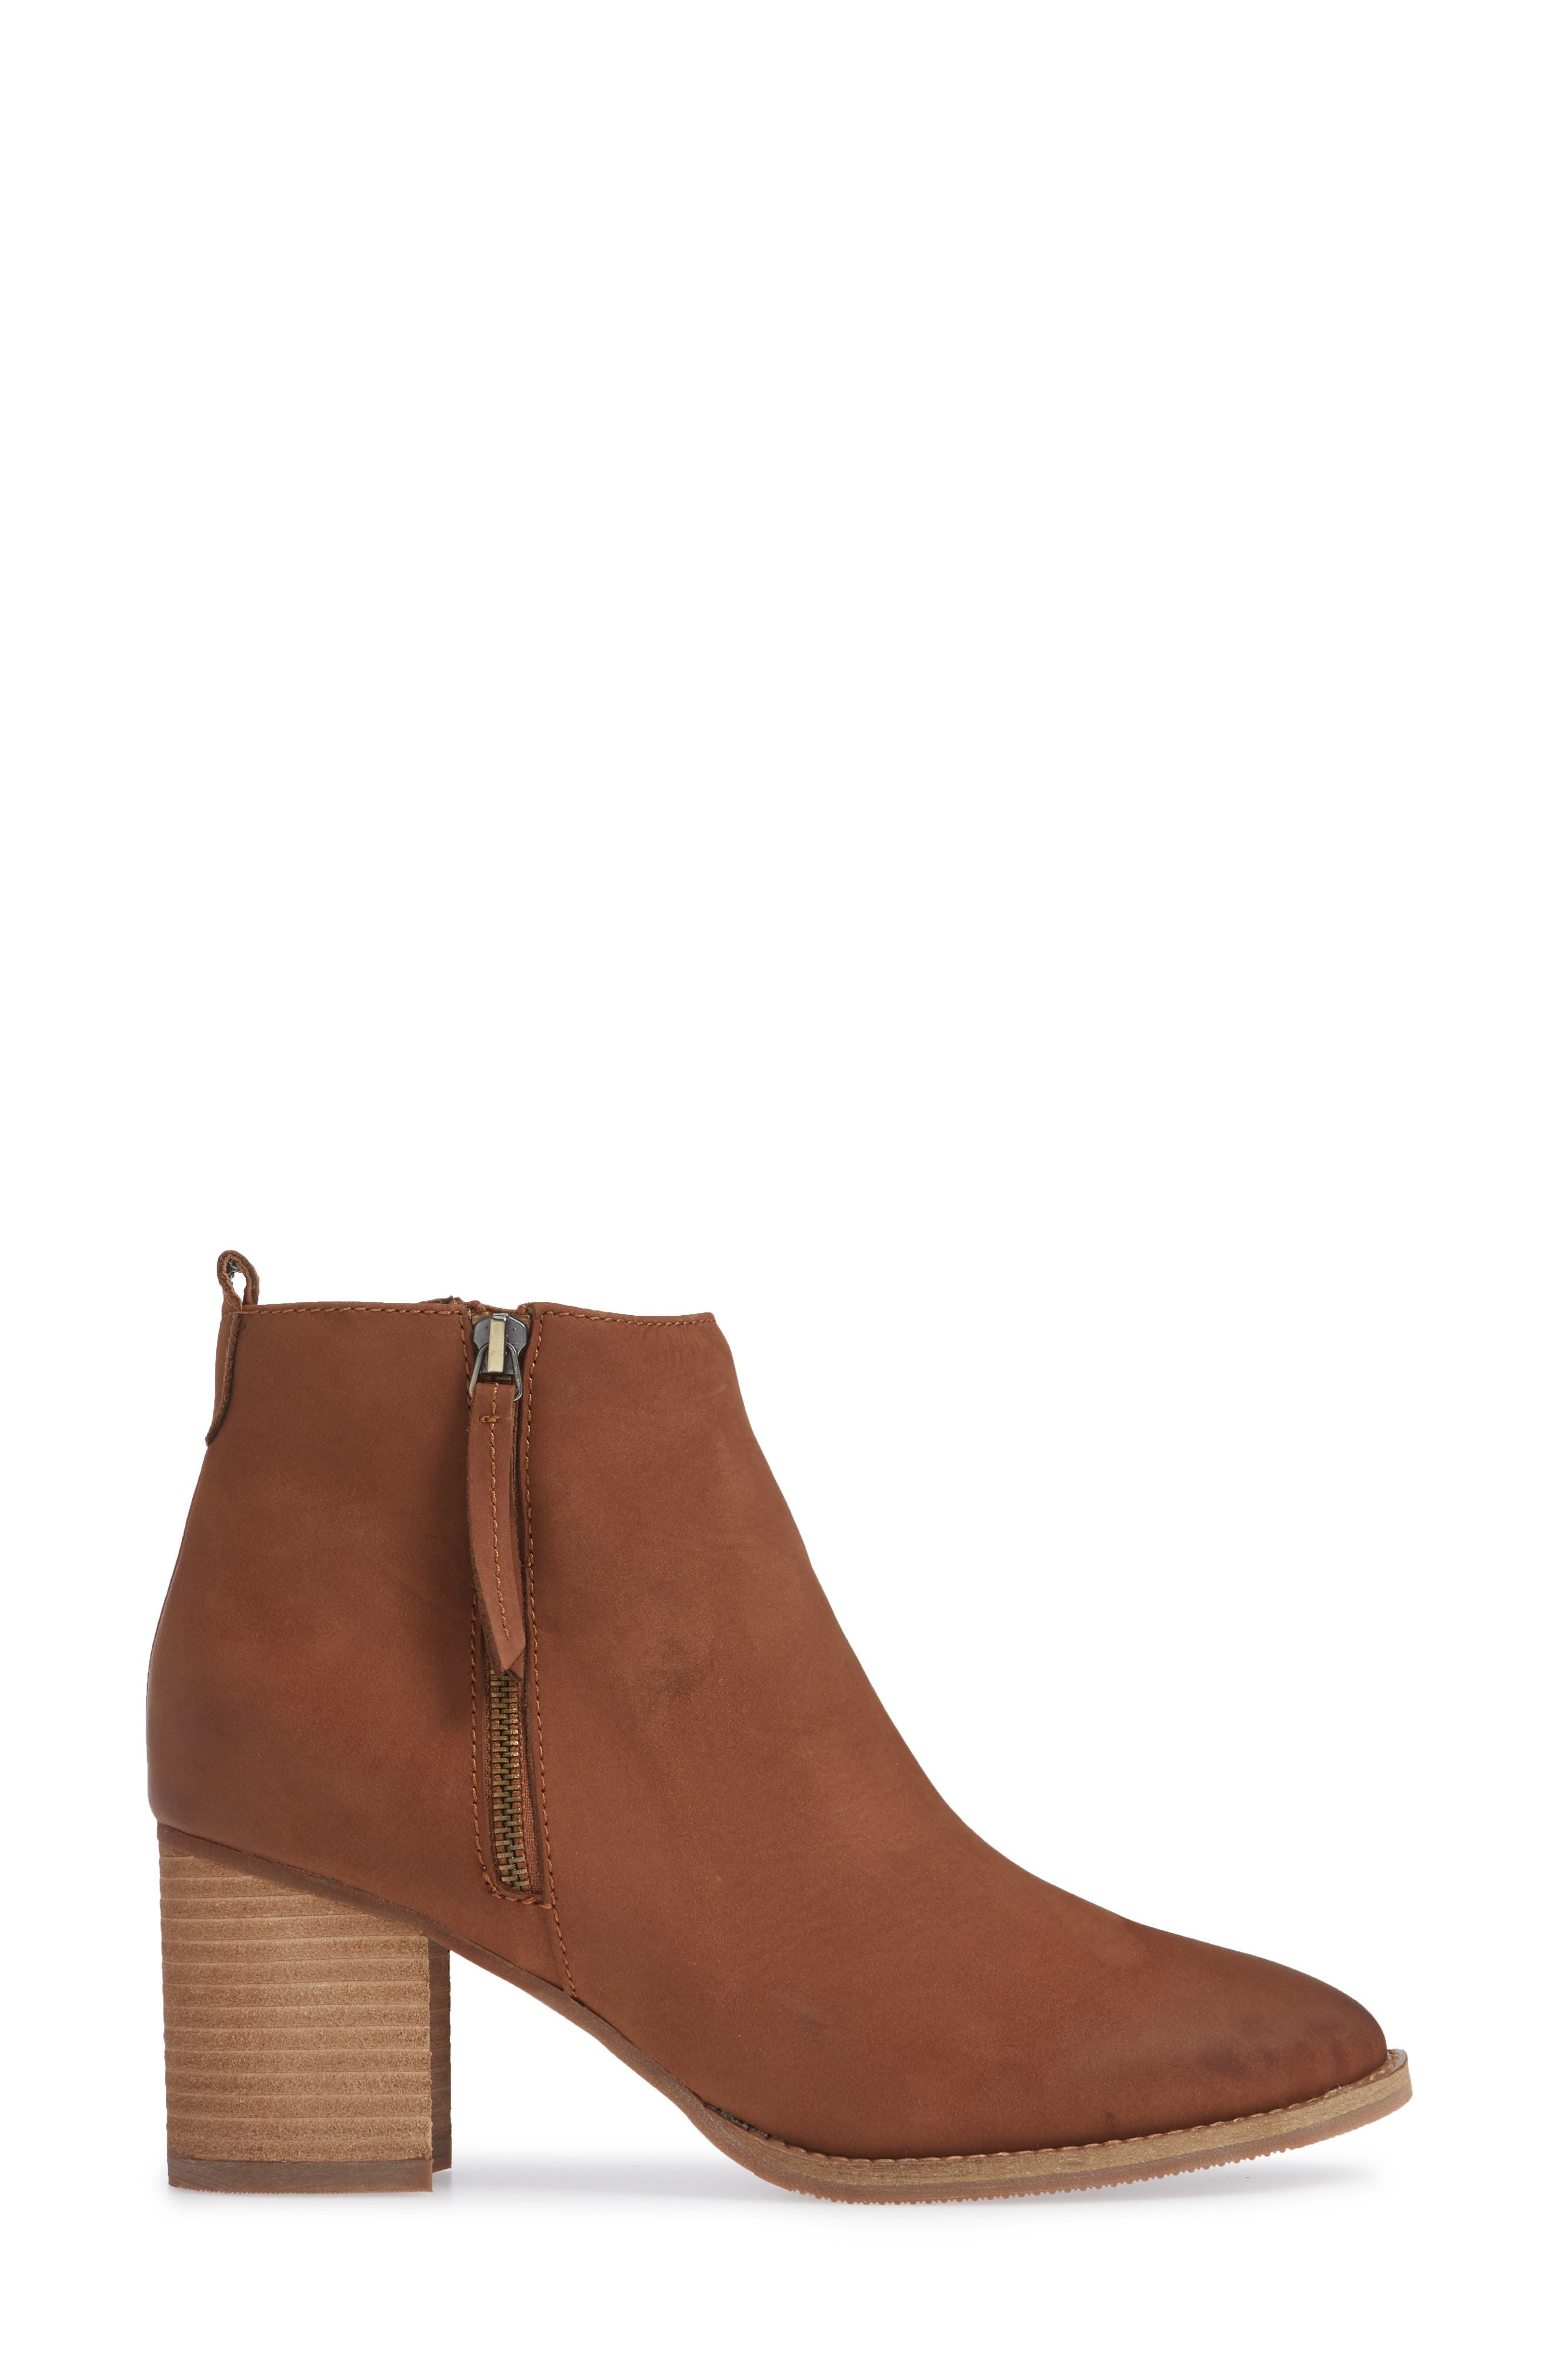 Nova Waterproof Bootie,                             Alternate thumbnail 3, color,                             COGNAC NUBUCK